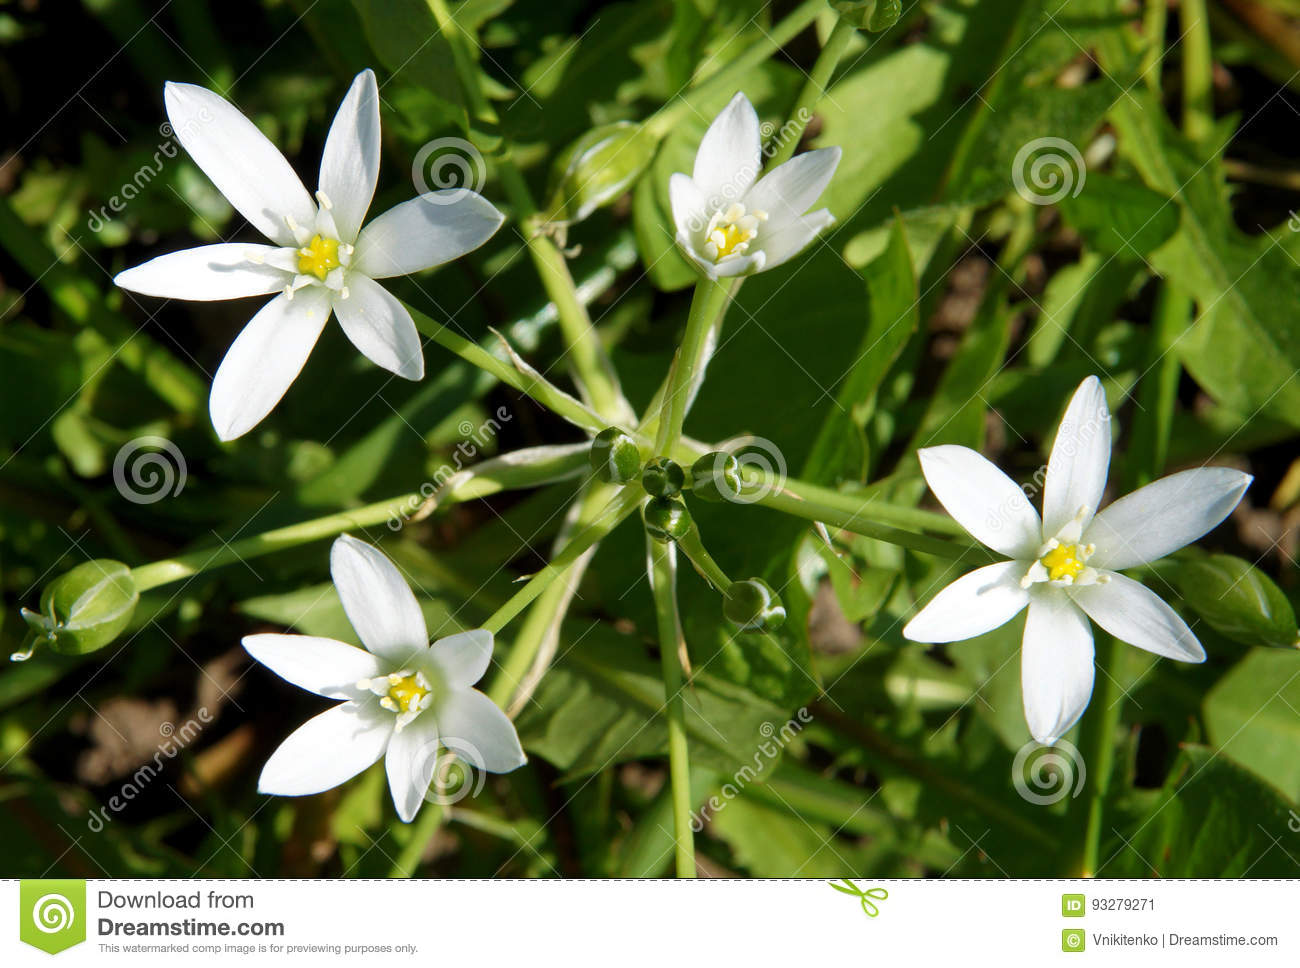 White star shaped flowers stock image image of green 93279271 download white star shaped flowers stock image image of green 93279271 mightylinksfo